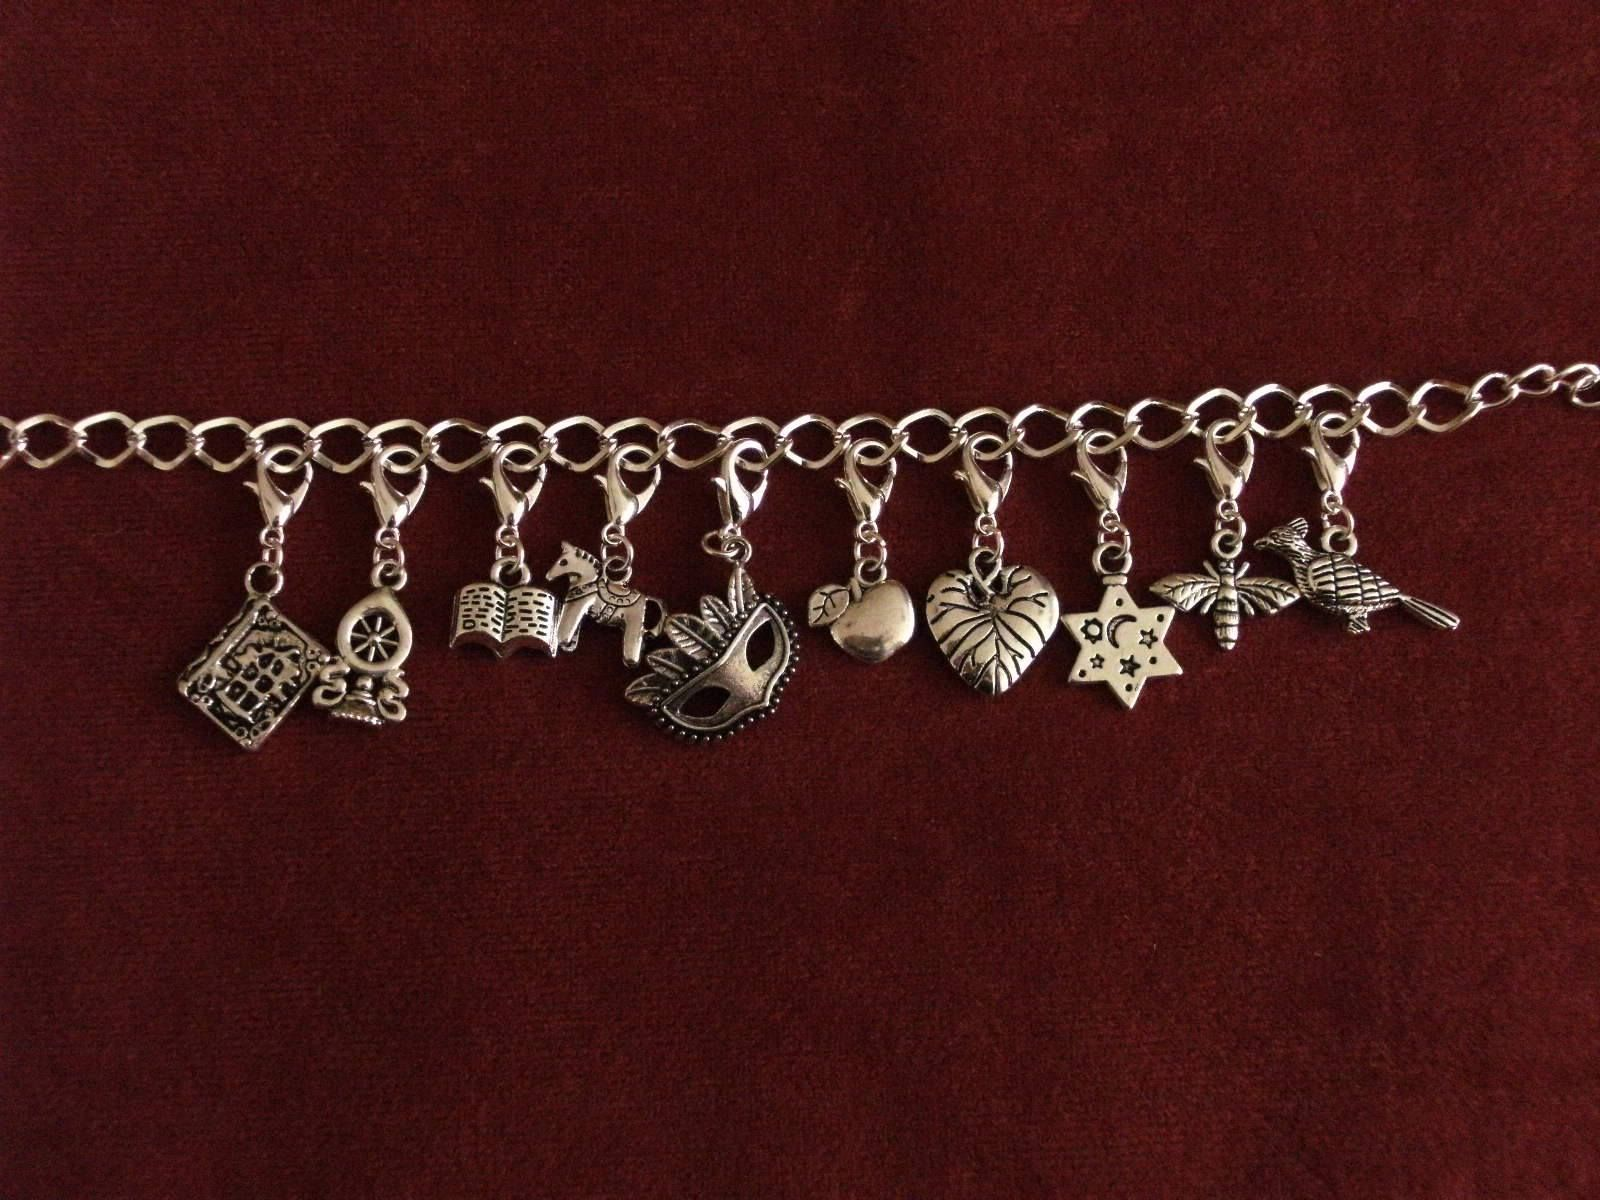 Charms of Amicitia on facebook. Charms for each nation.